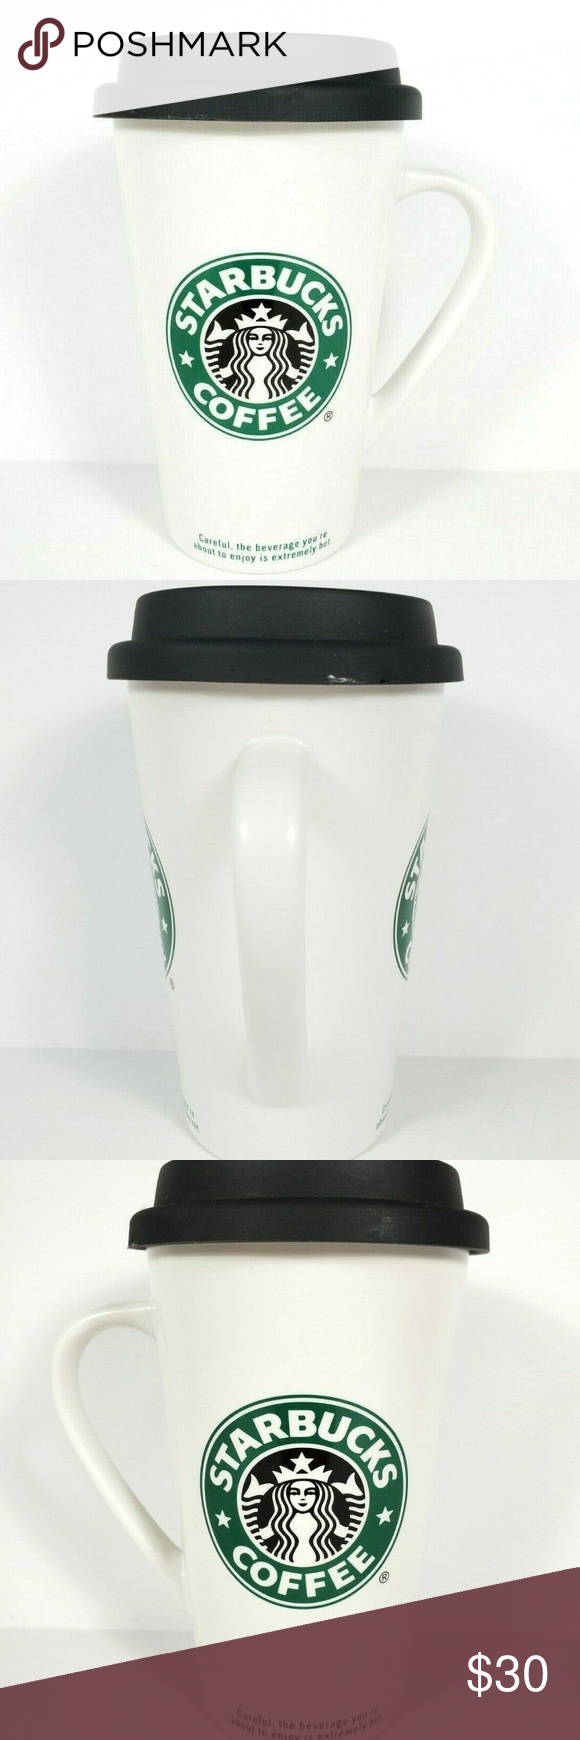 Starbucks Ceramic To Go Cup Mug 2006 Handle Lid in 2020